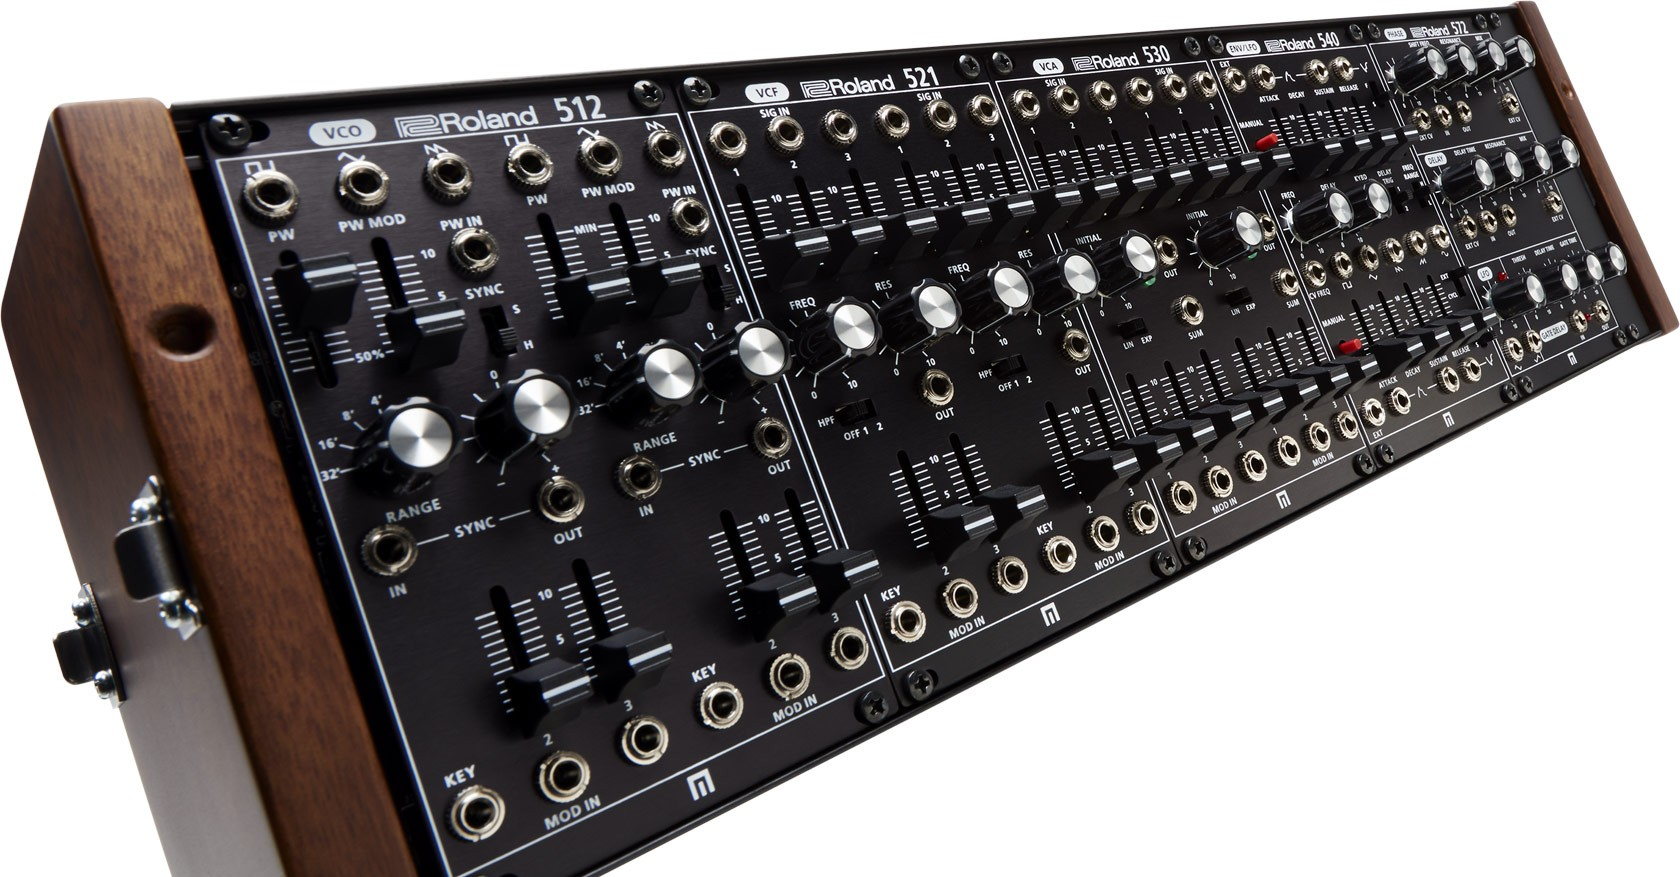 Roland Intros System-500 Complete Set 'A Modern Classic